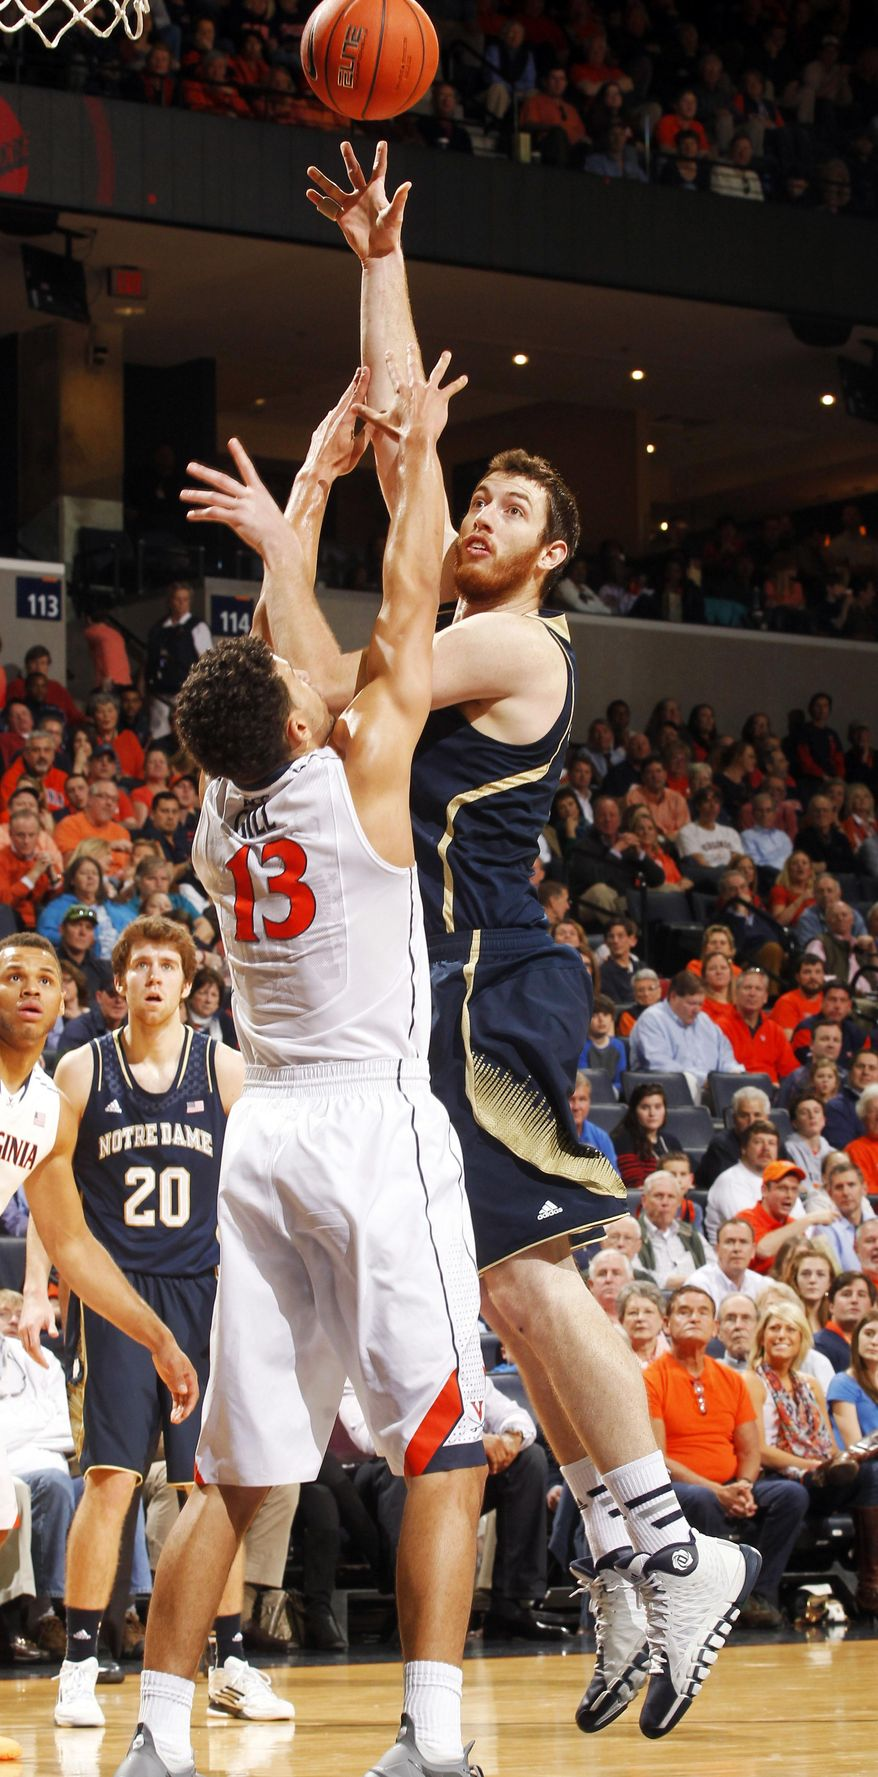 Notre Dame center Garrick Sherman, right, shoots over Anthony Gill during an NCAA college basketball game Saturday, Feb. 22, 2014, in Charlottesville, Va. (AP Photo/Andrew Shurtleff)